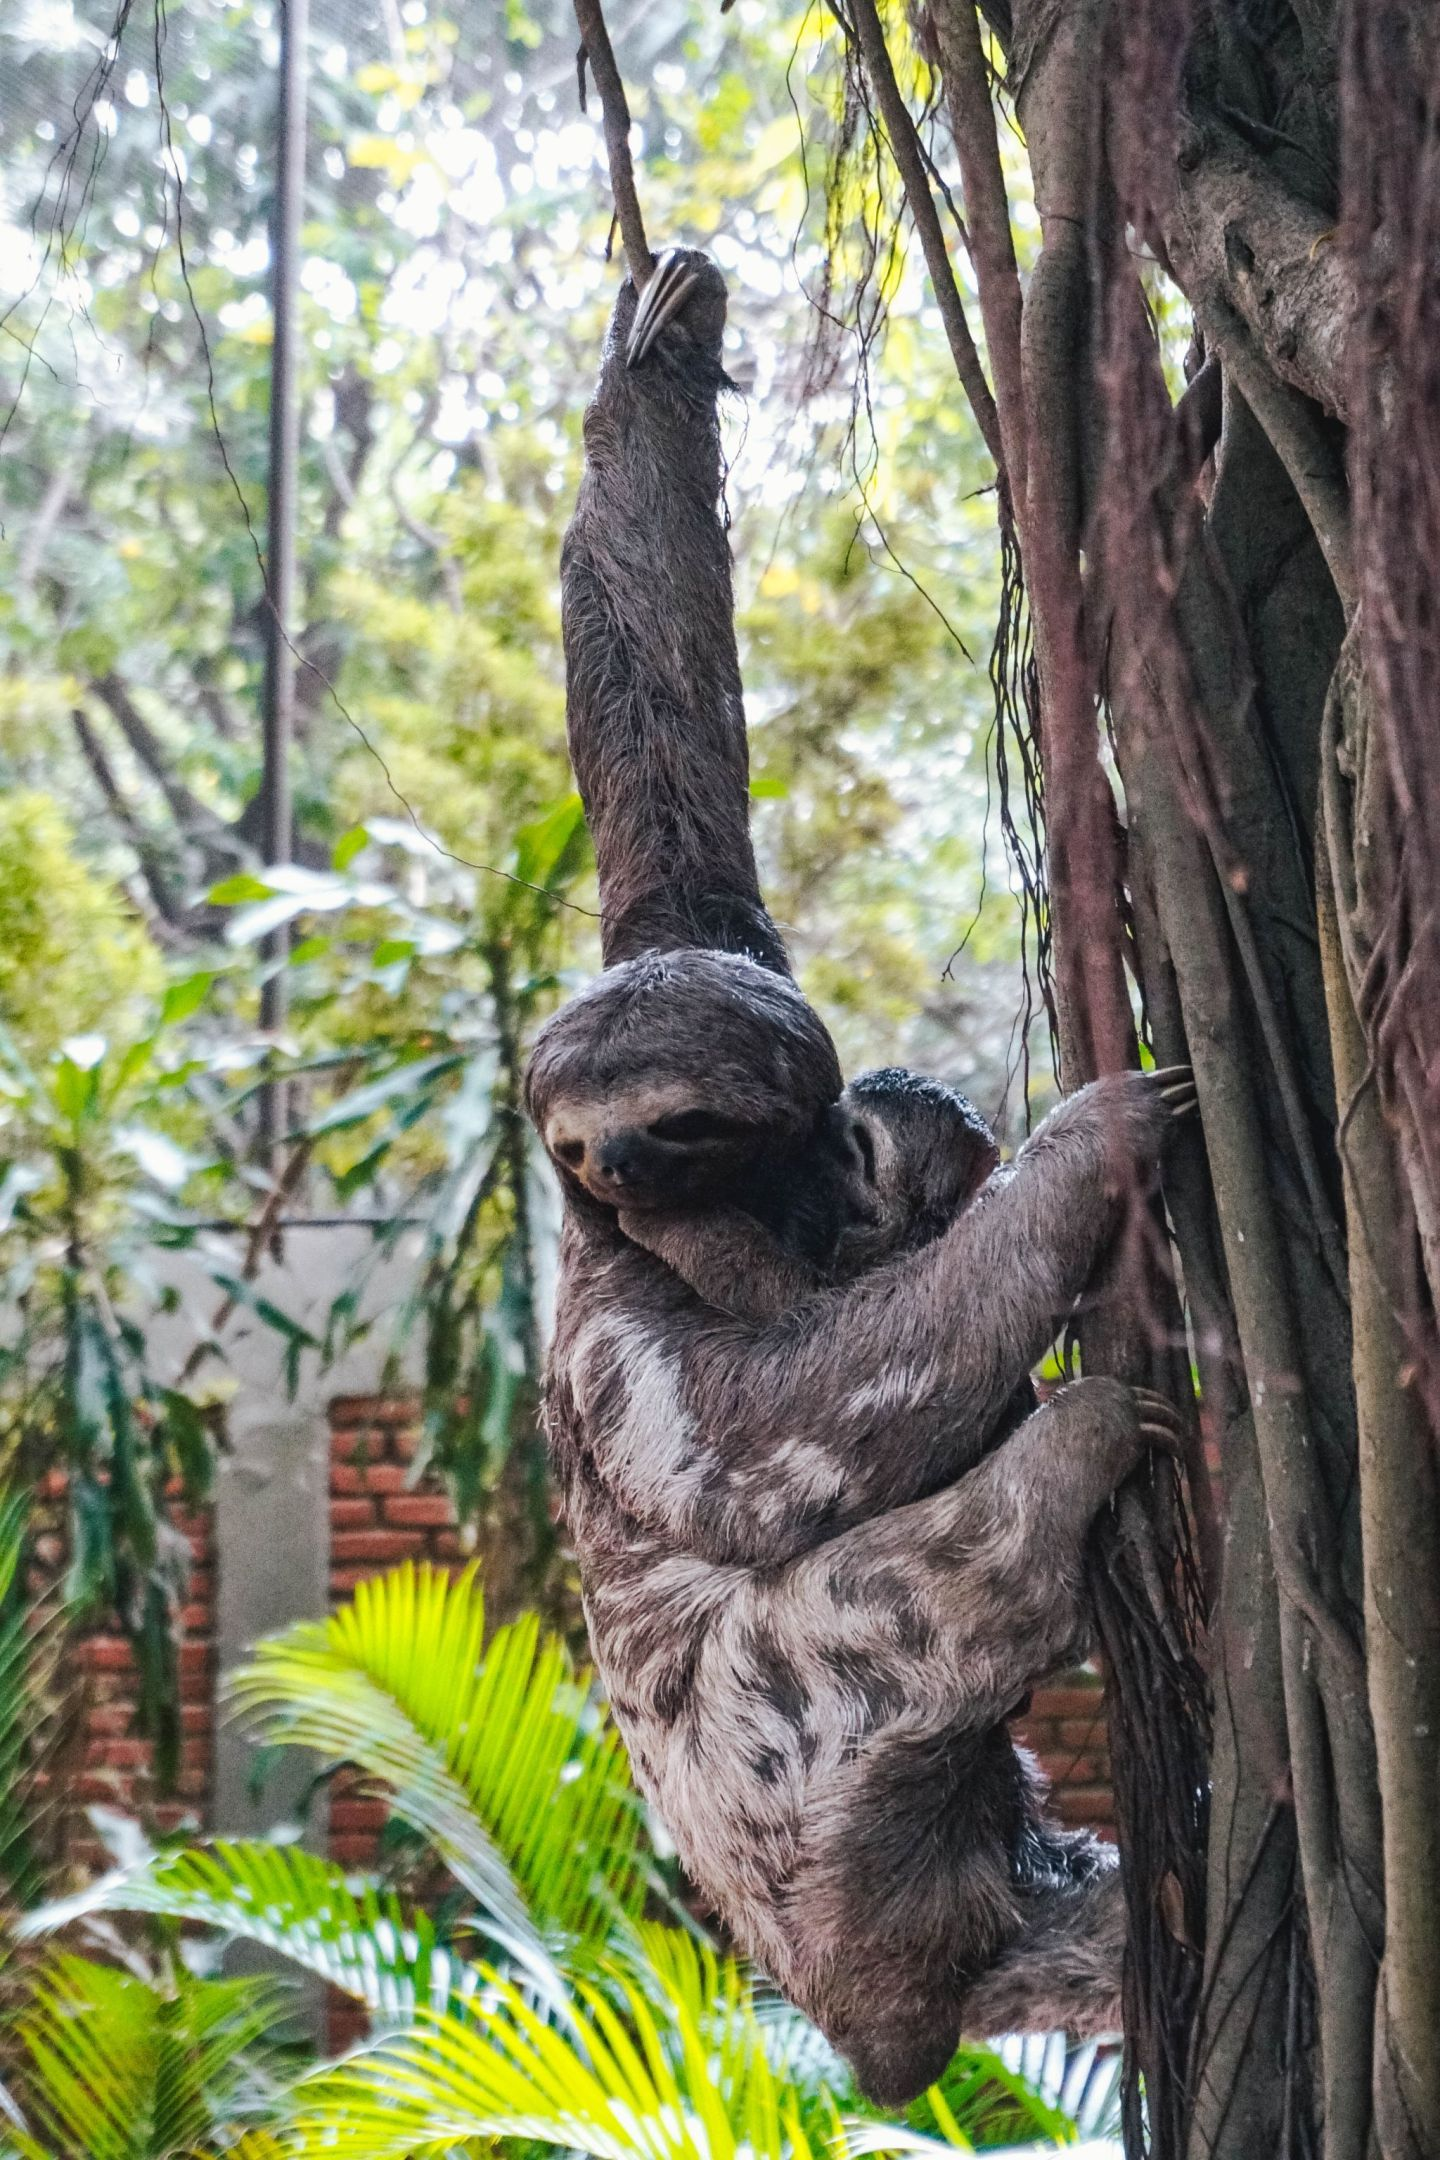 Spotting Sloths in Santa Cruz de la Sierra Bolivia